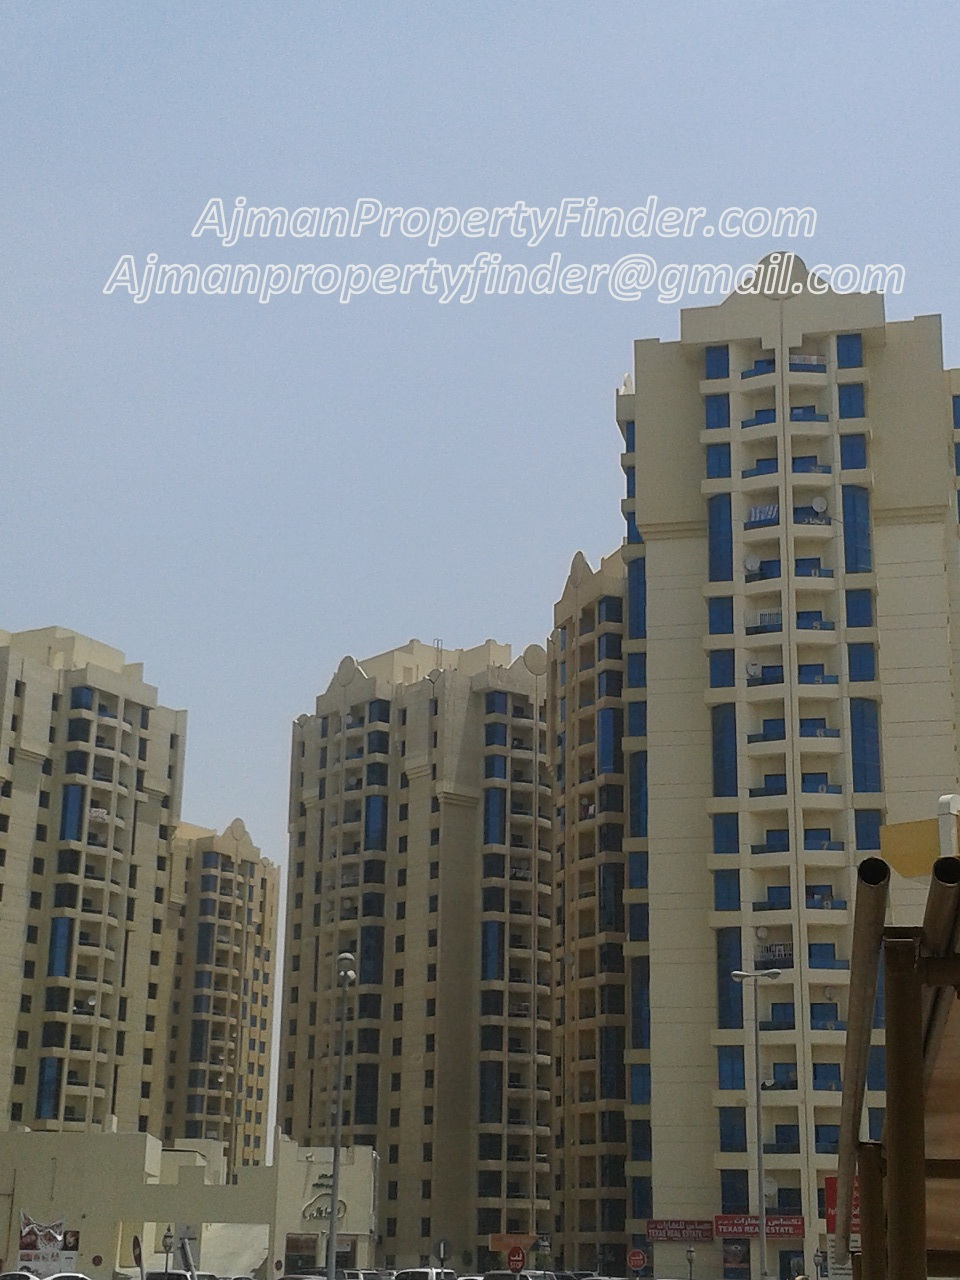 1 Bhk for Sale in Al Khor Towers Ajman | Freehold Property for Sale in Ajman